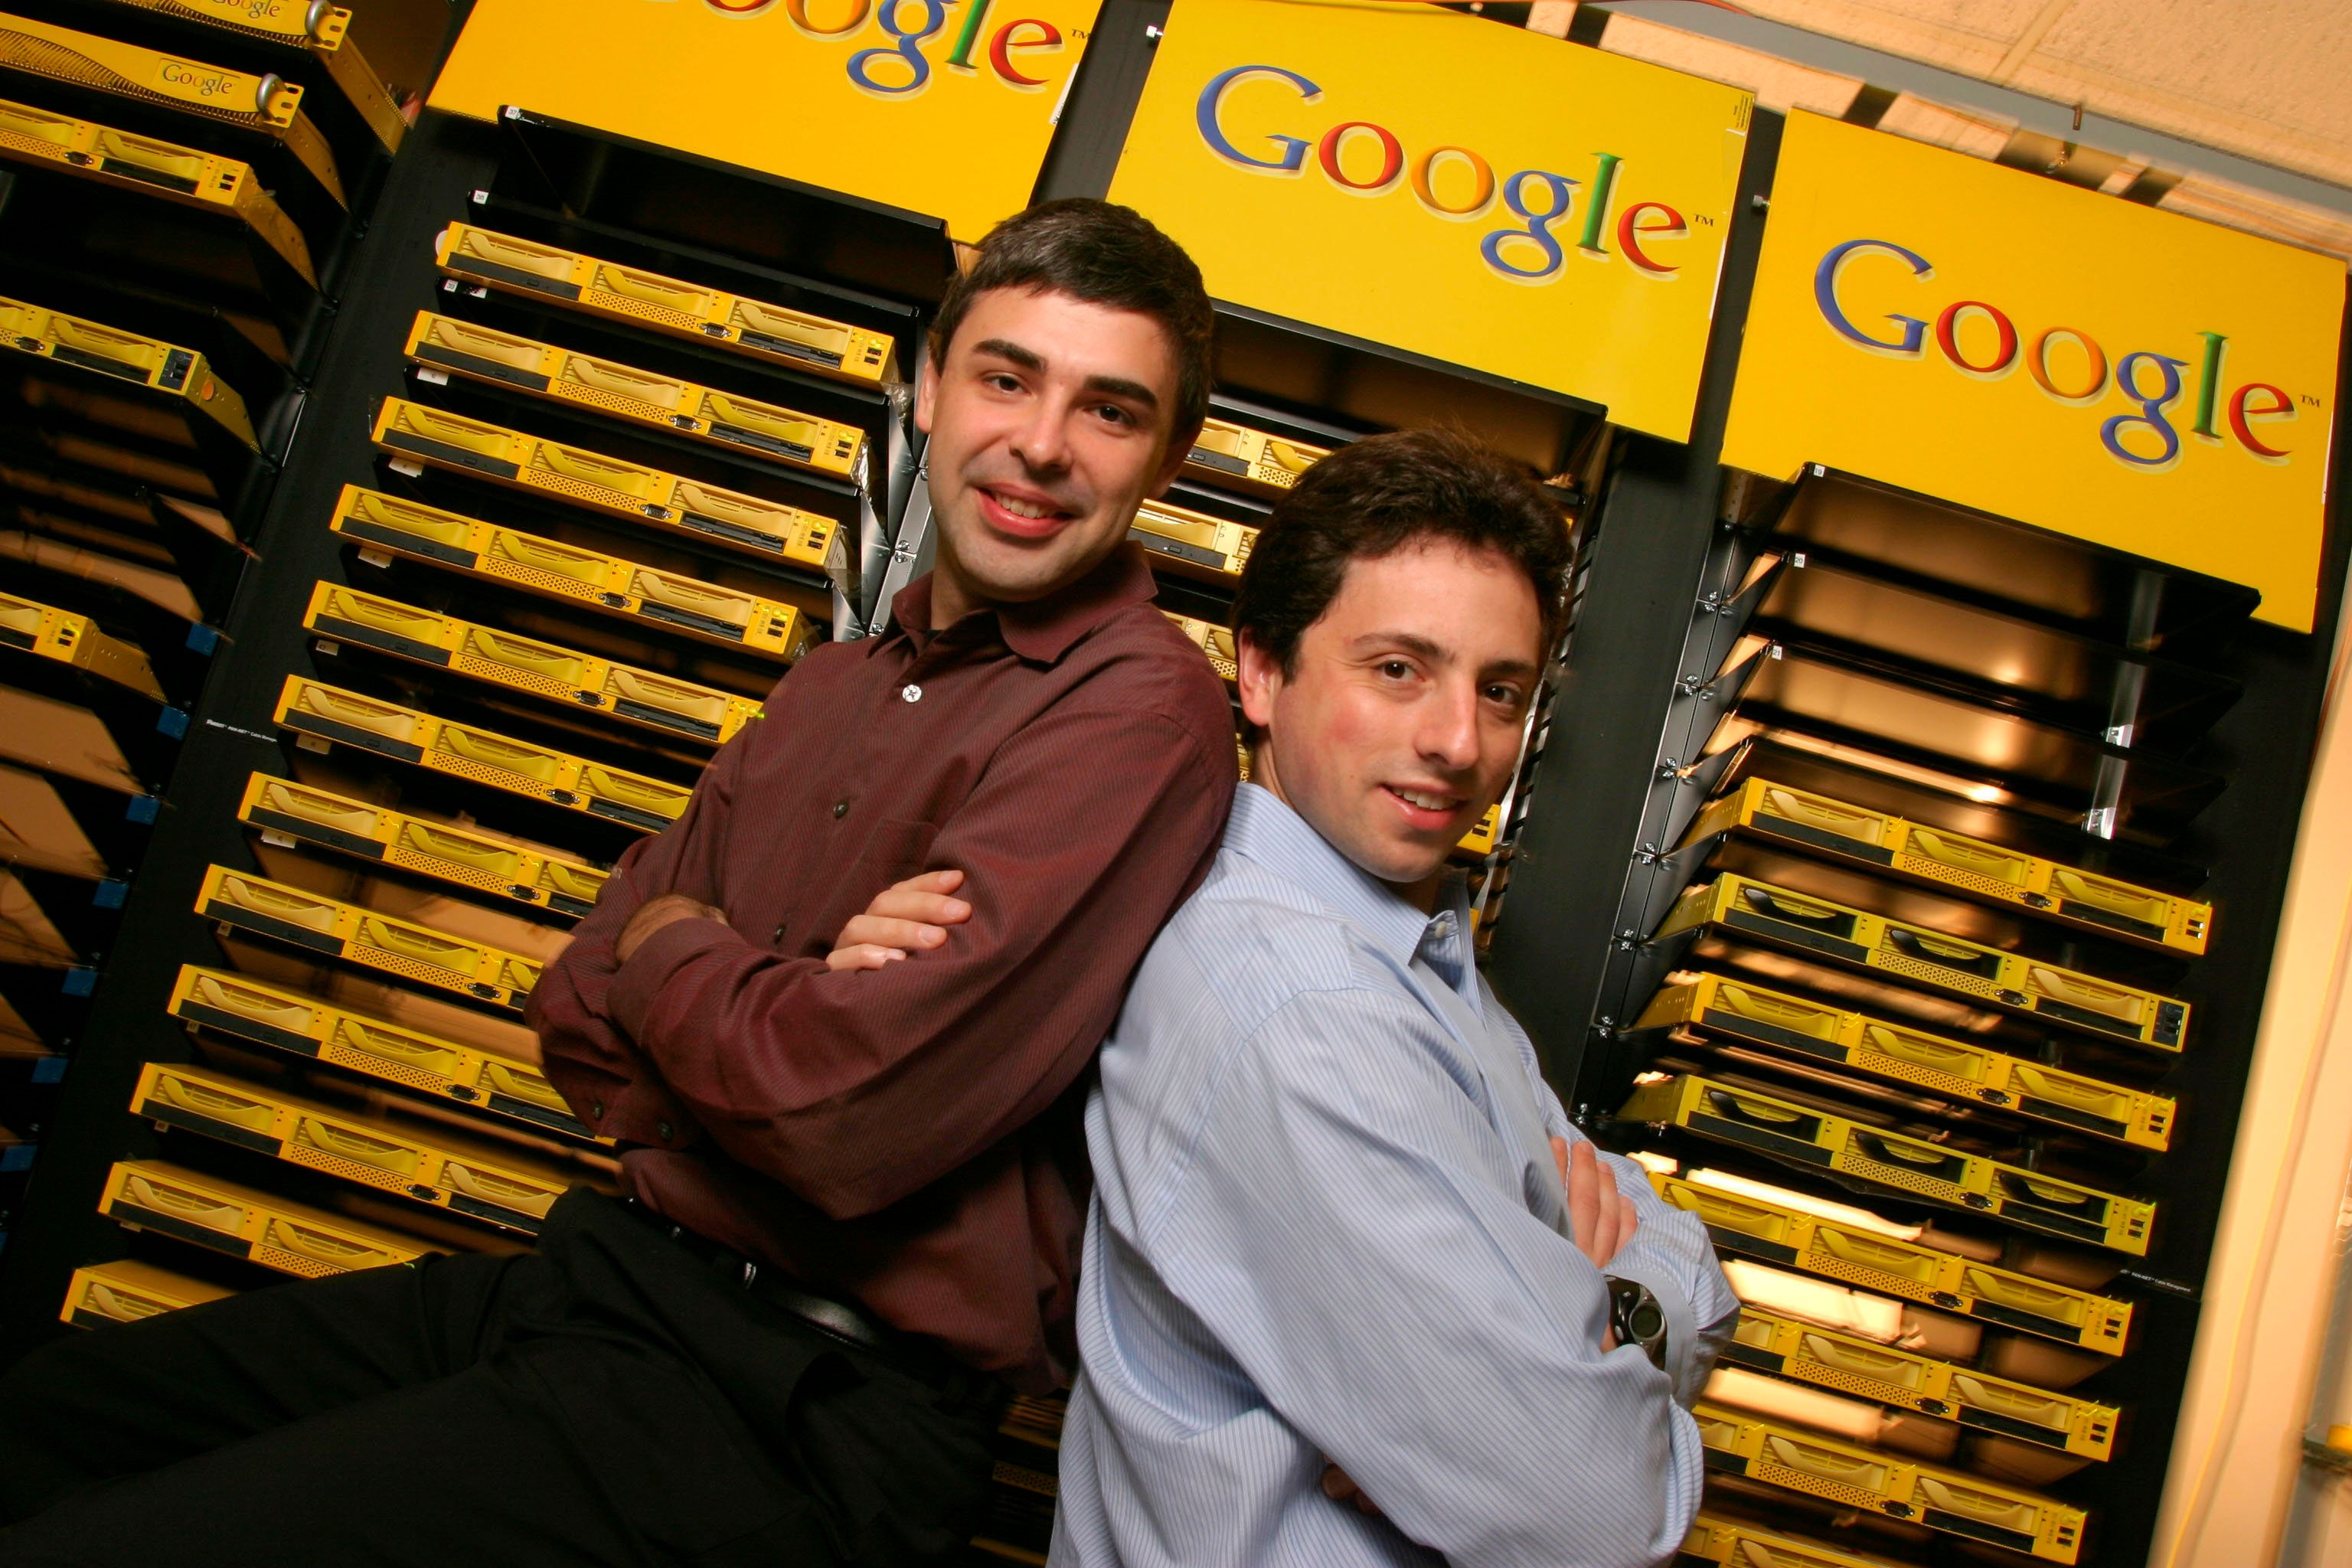 Google Turns 20: 10 Things You Might Not Know About The Internet